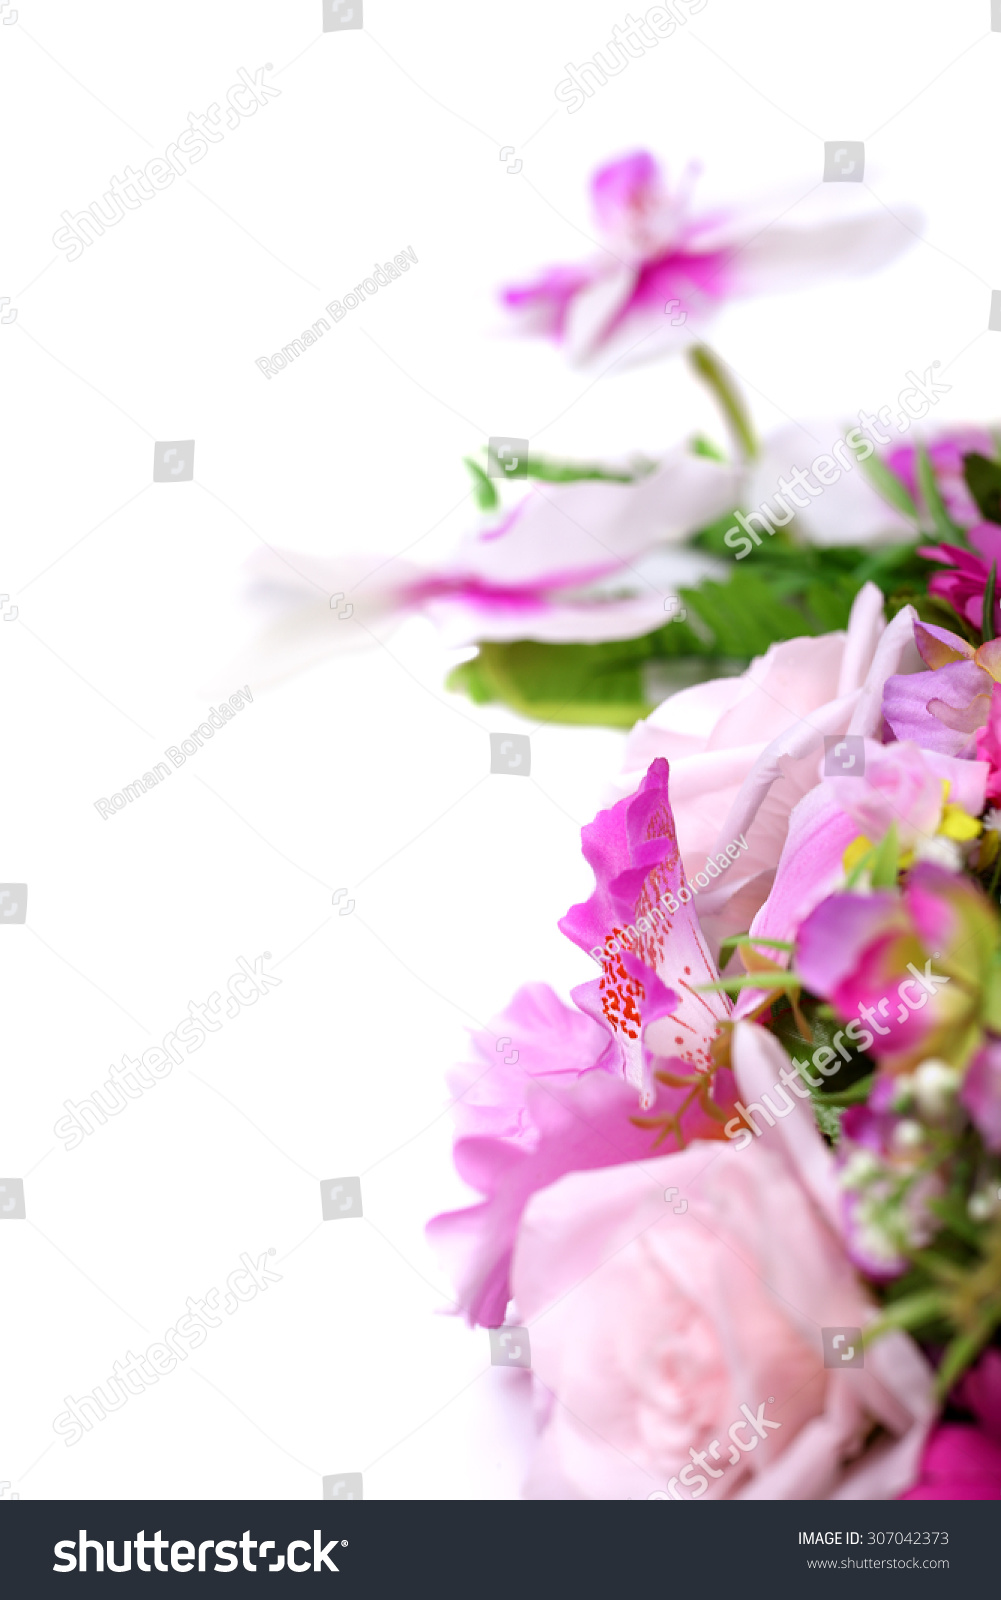 Purple flowers wedding bouquet background frame stock photo edit purple flowers wedding bouquet as background frame isolated on white for invitation card design izmirmasajfo